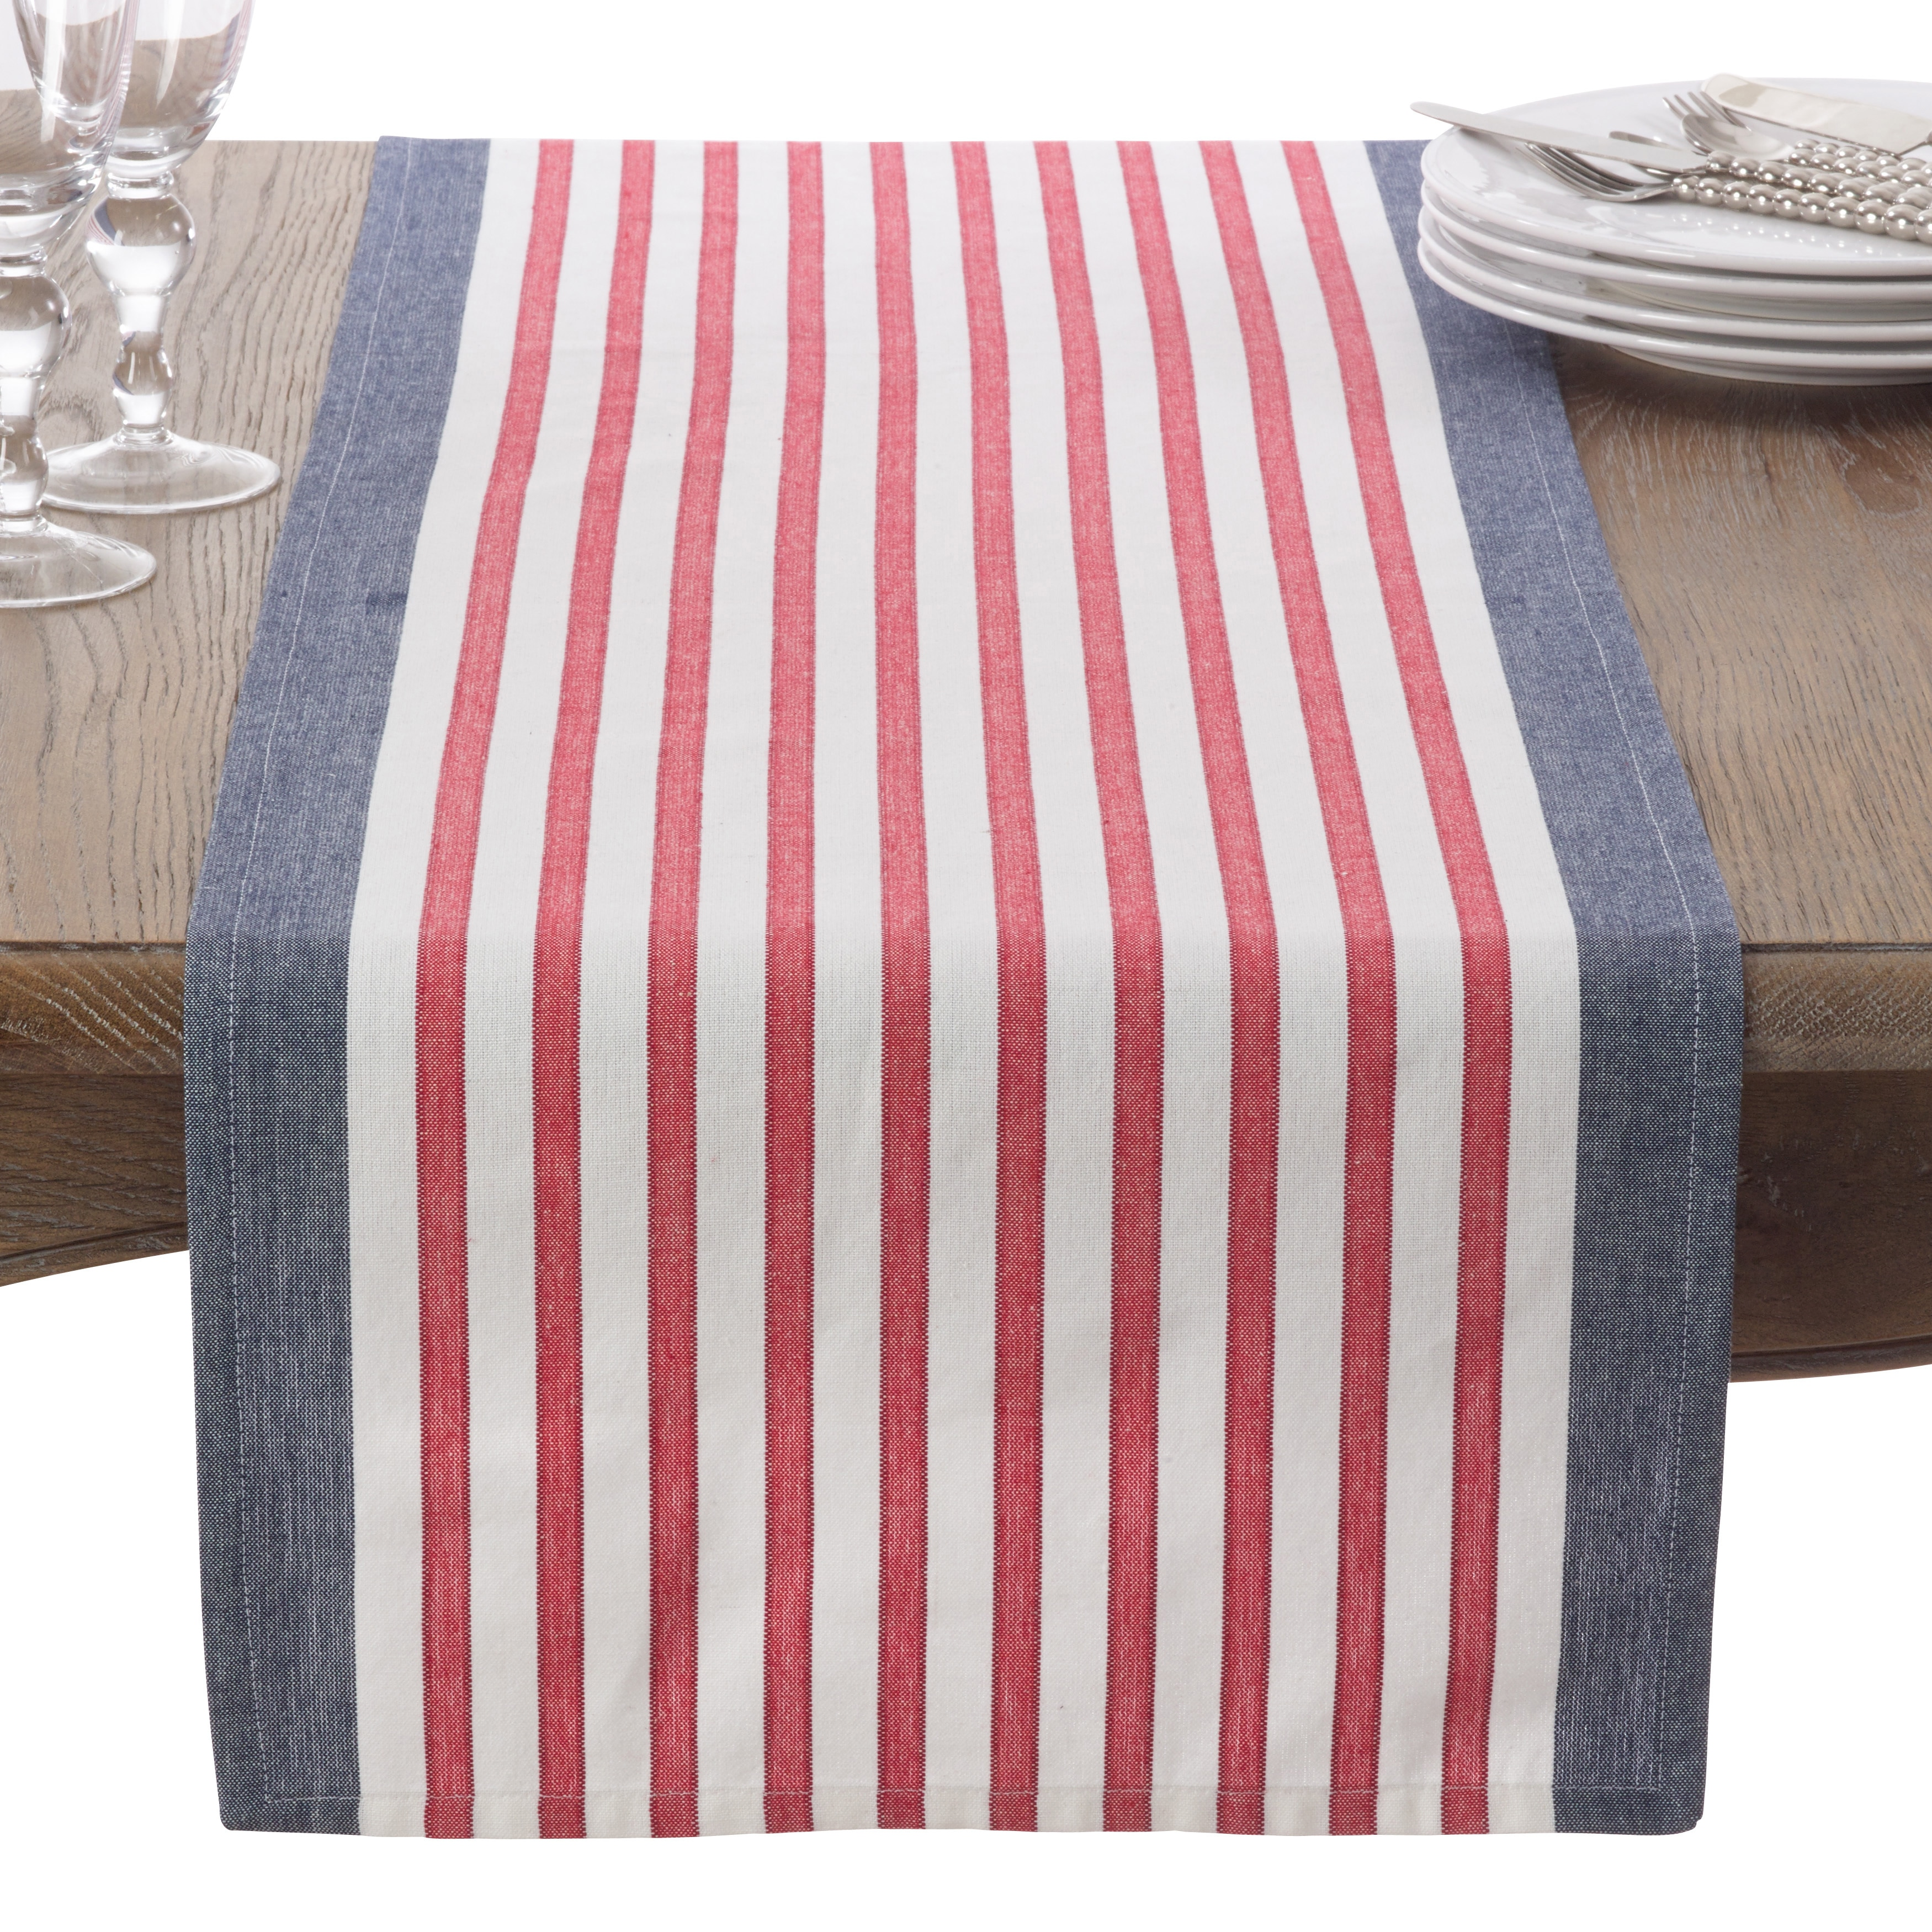 Shop American Flag Usa Red White Blue Stripe Cotton Table Runner